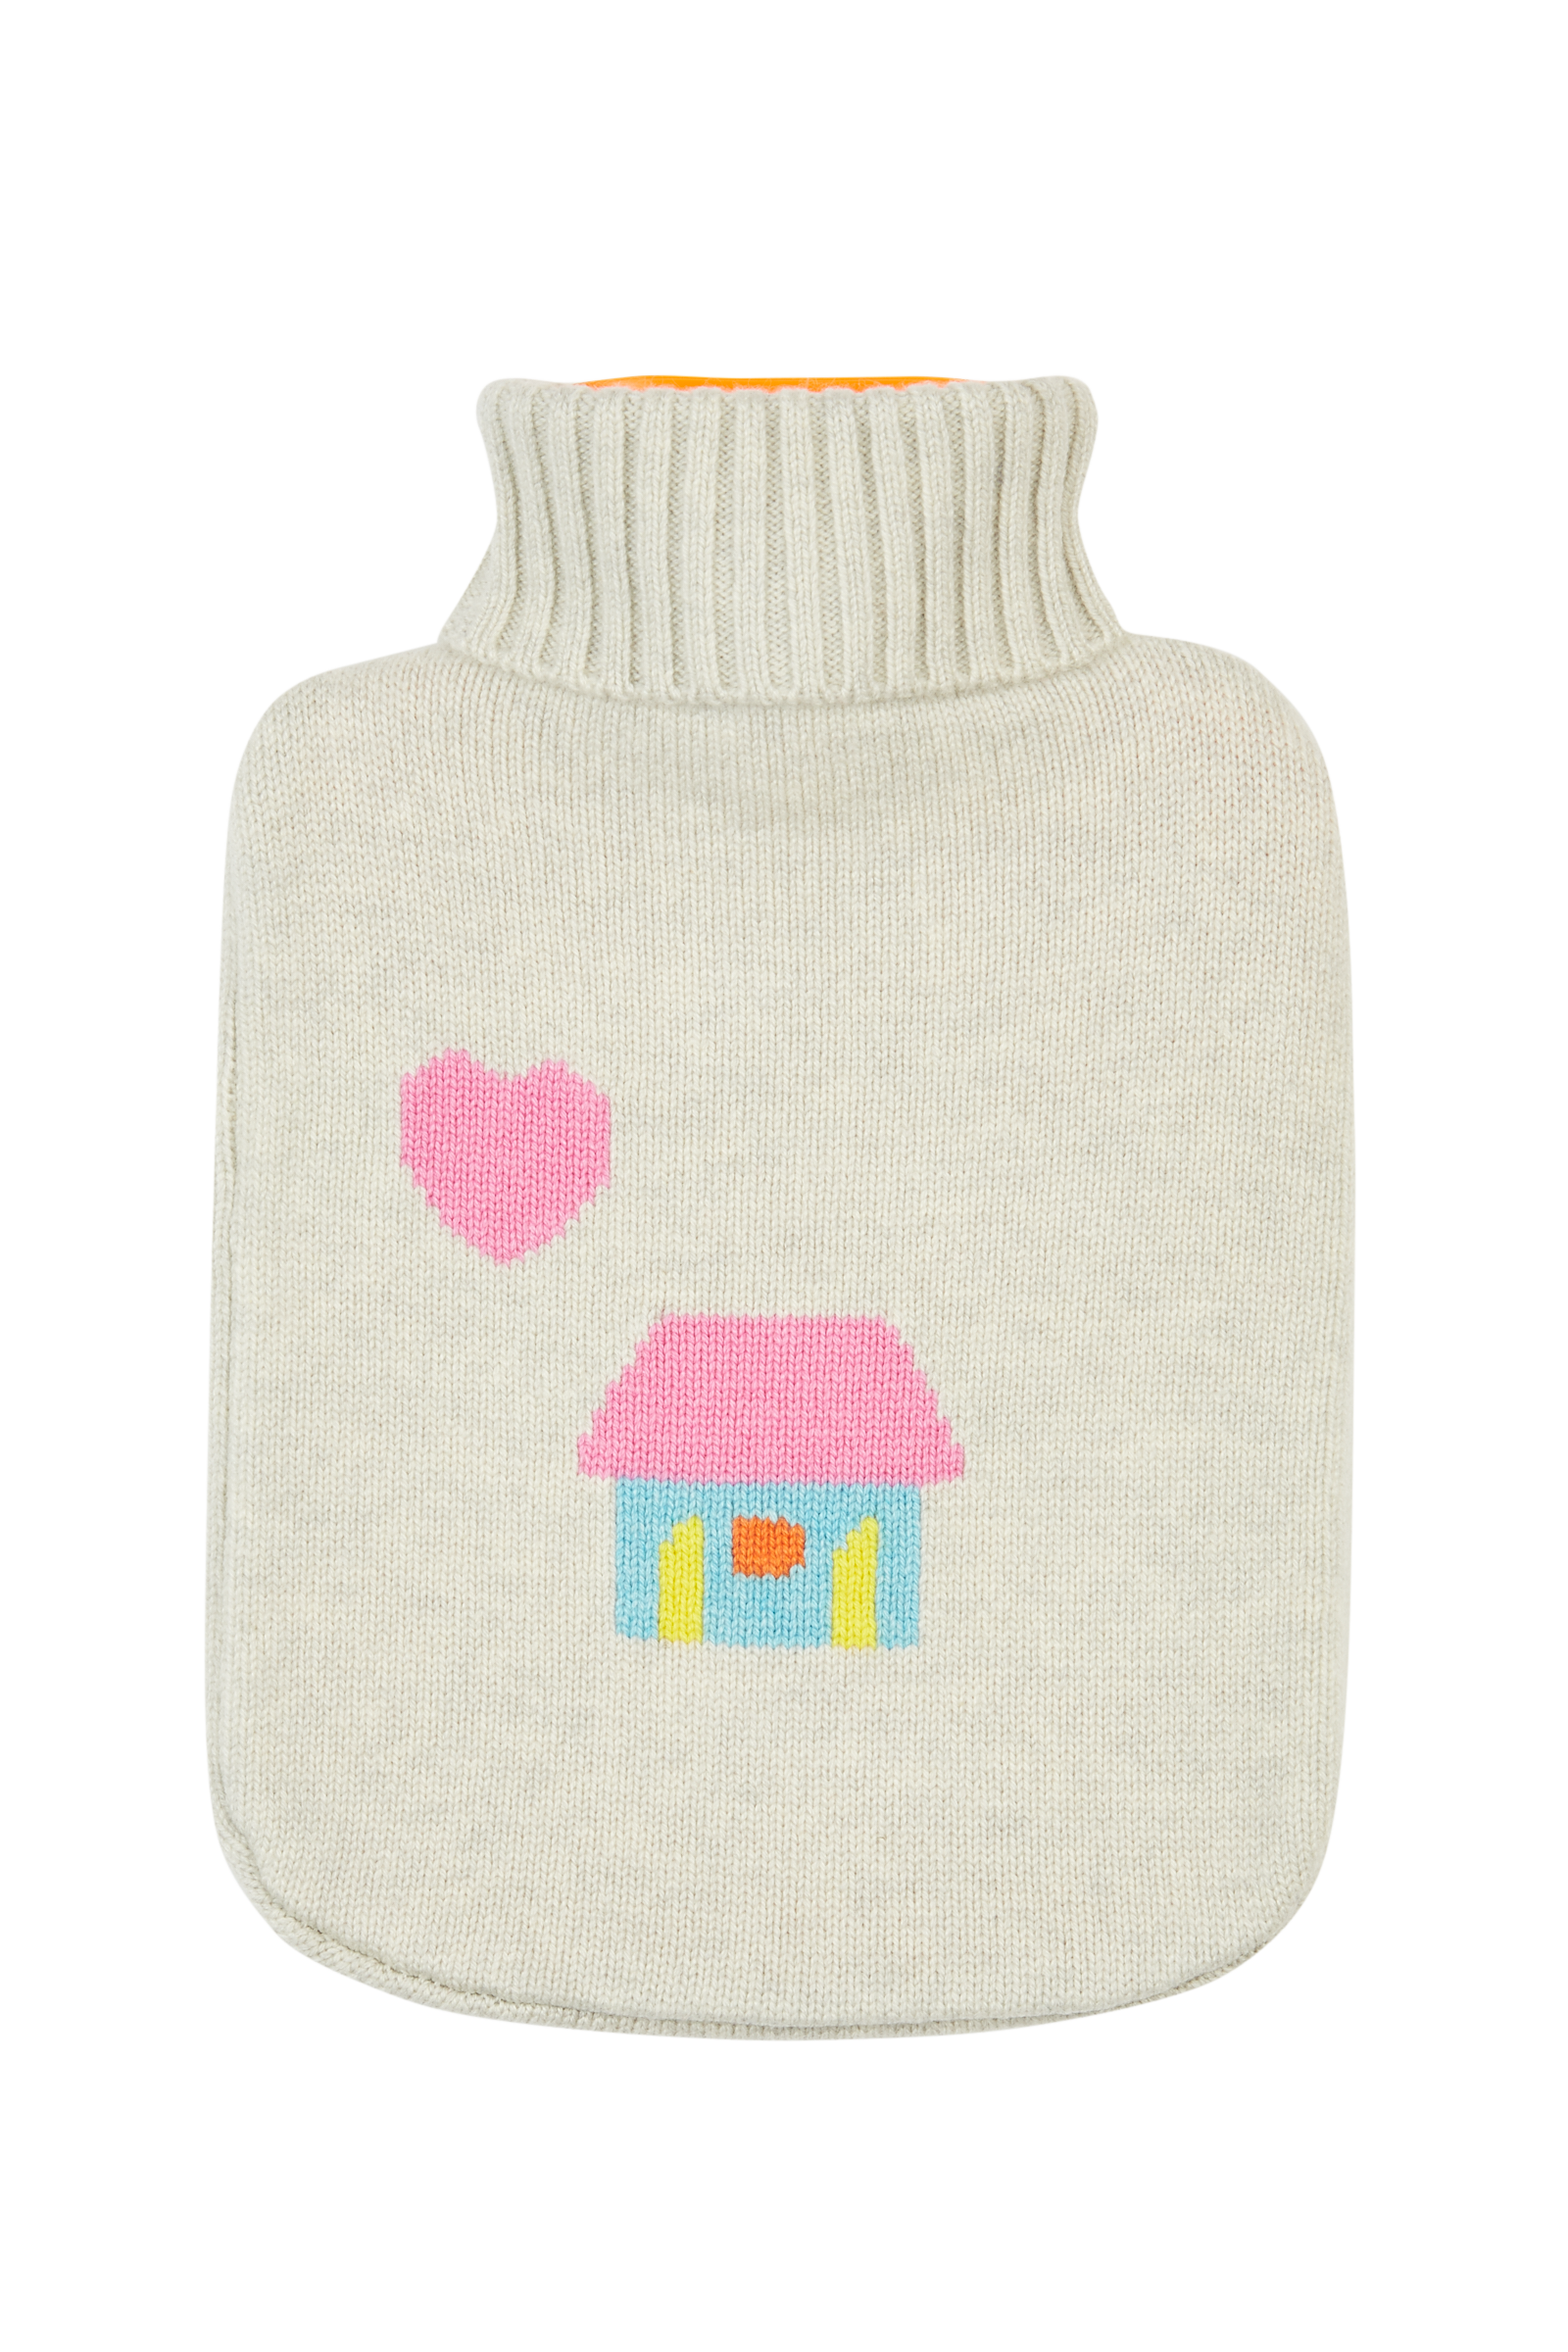 Home Sweet Home Hot Water Bottle